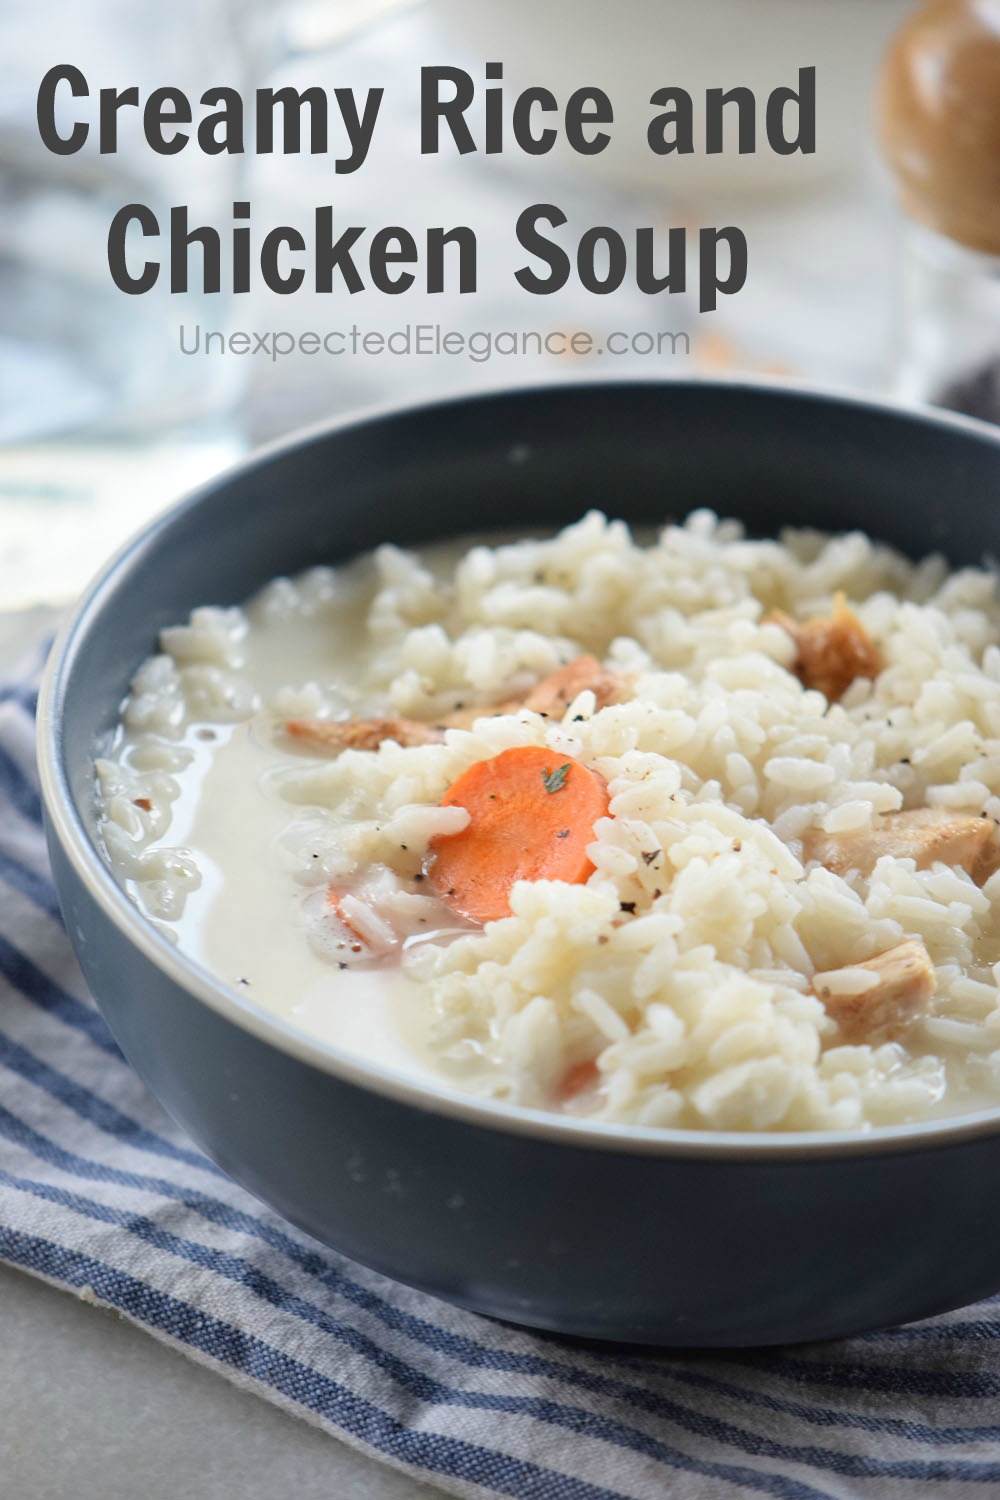 Need a warm meal tonight that tastes great? Give this creamy rice and chicken soup a try! Add a salad and you have a complete meal!